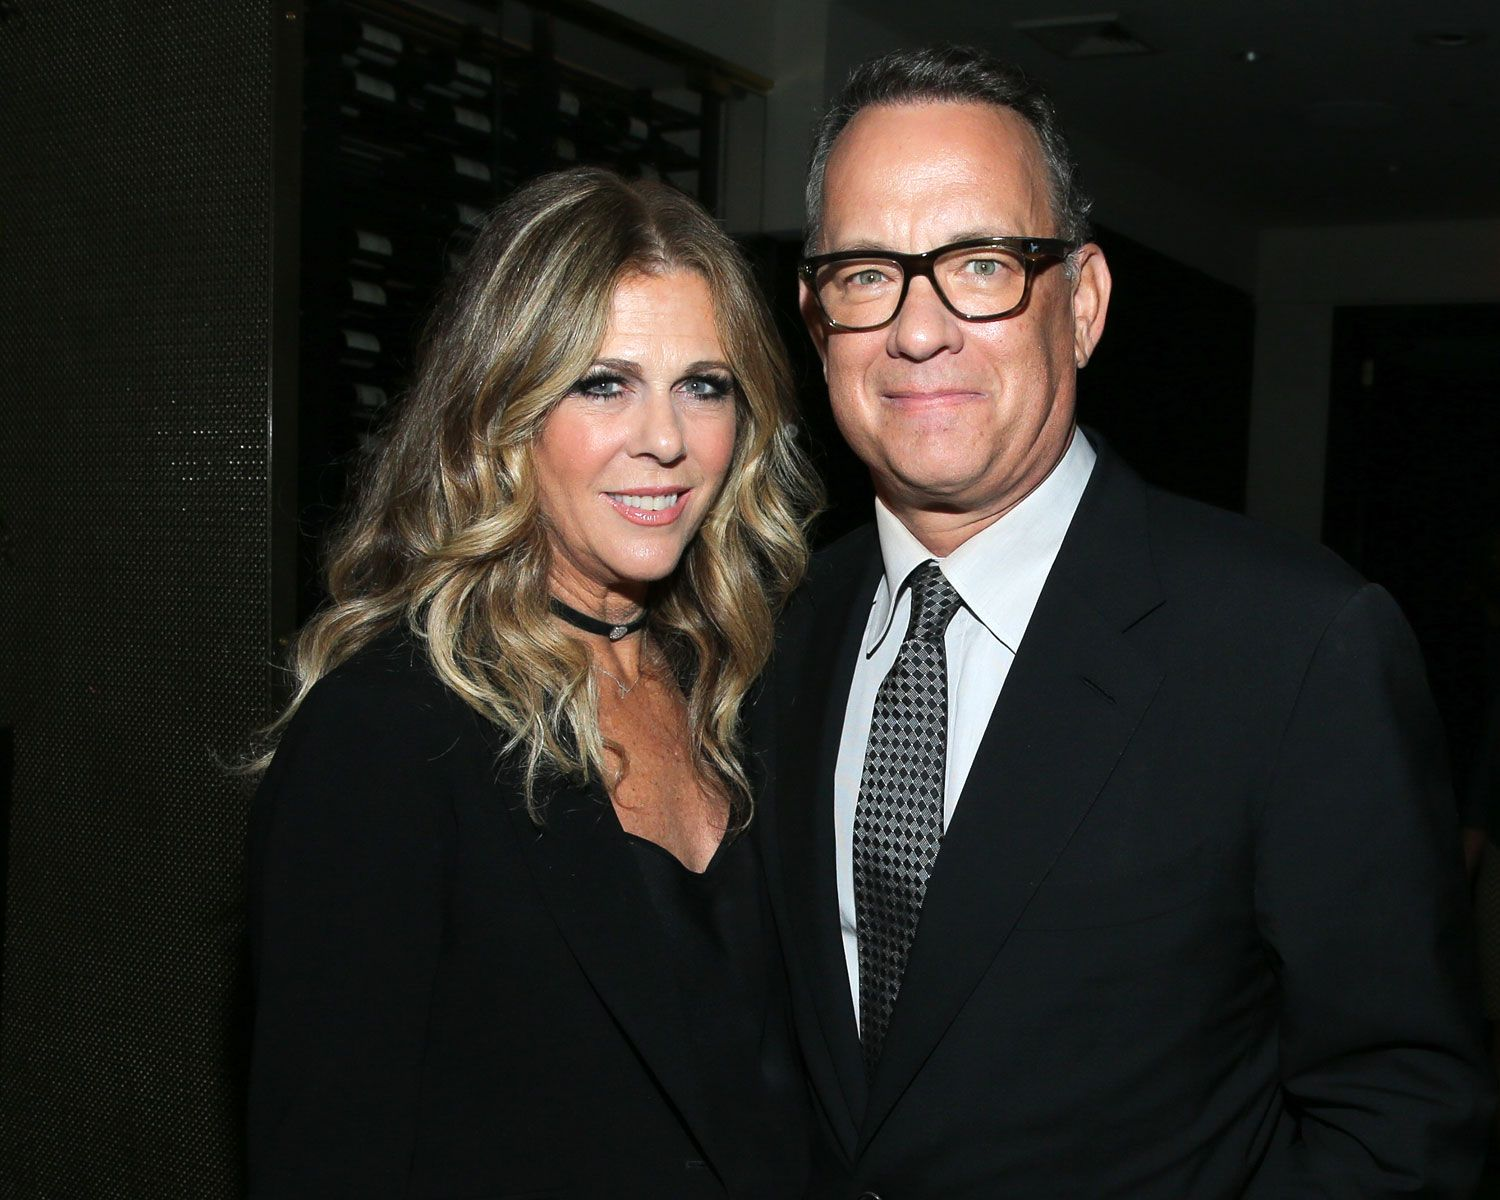 Rita wilson posts adorable wedding anniversary note for tom hanks